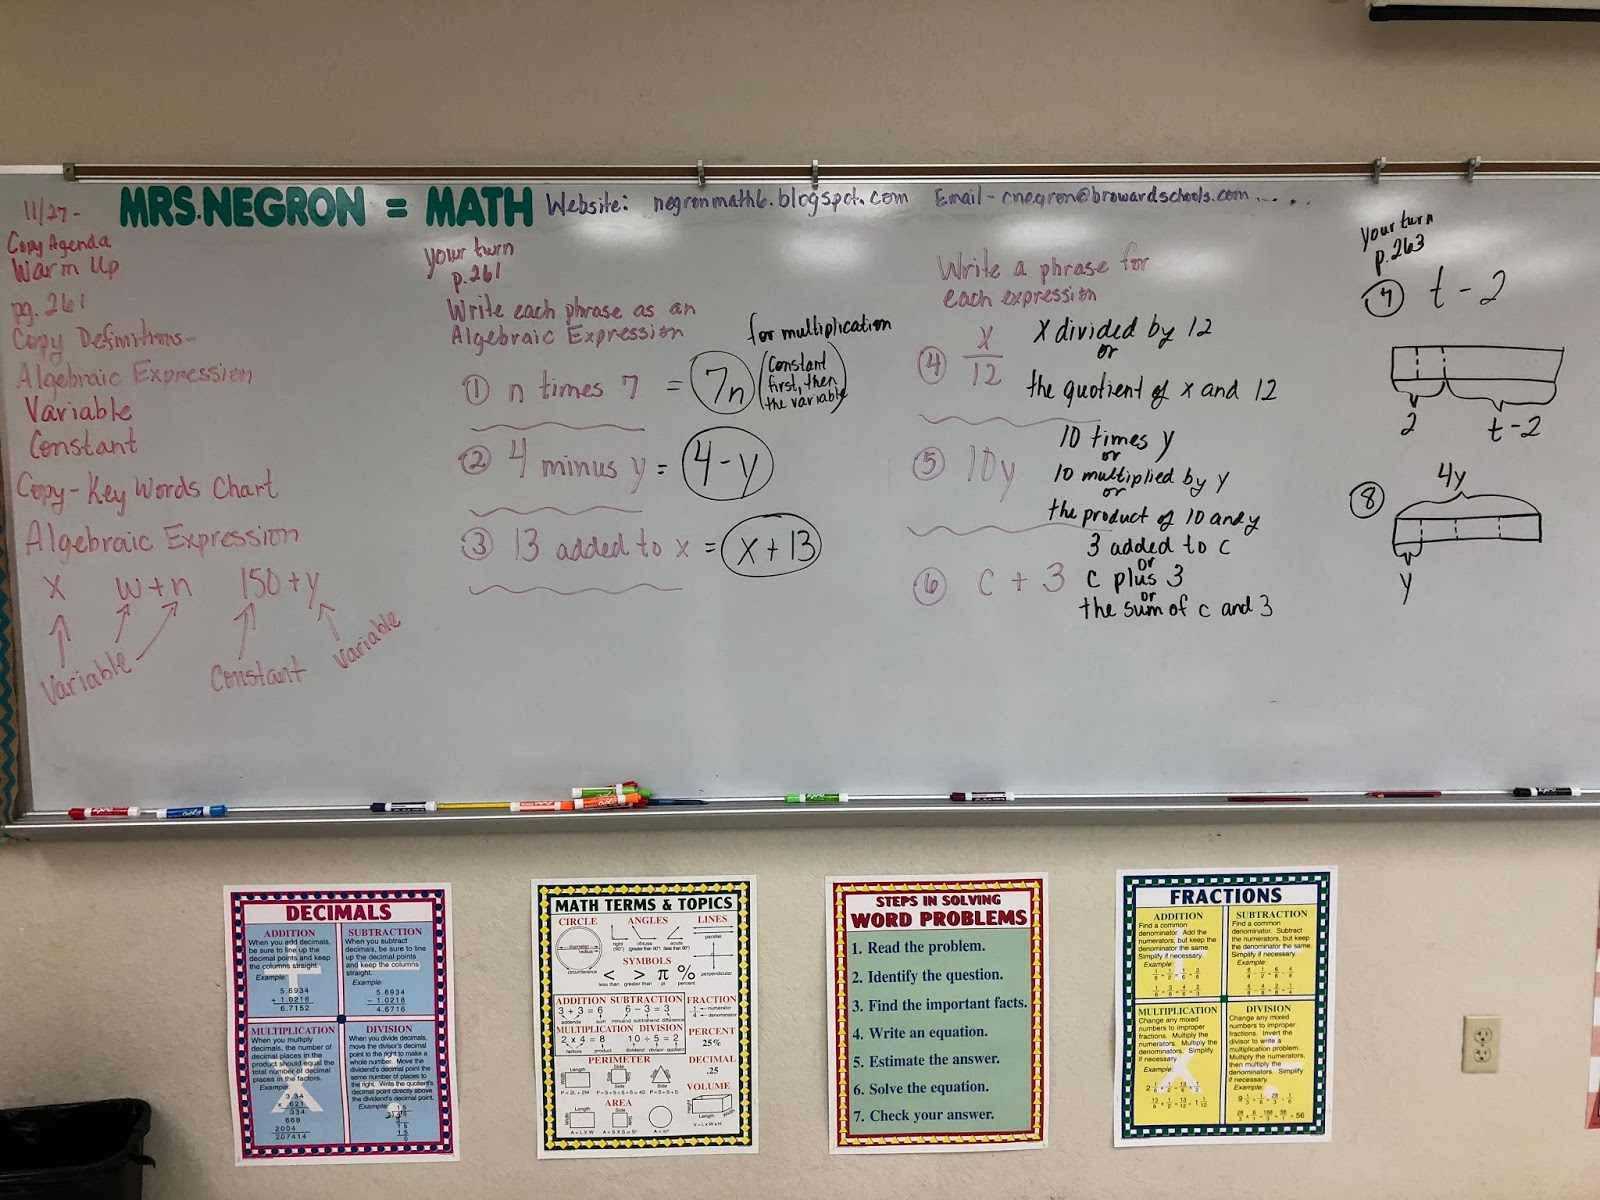 facing math lesson 11 writing and evaluating expressions in math